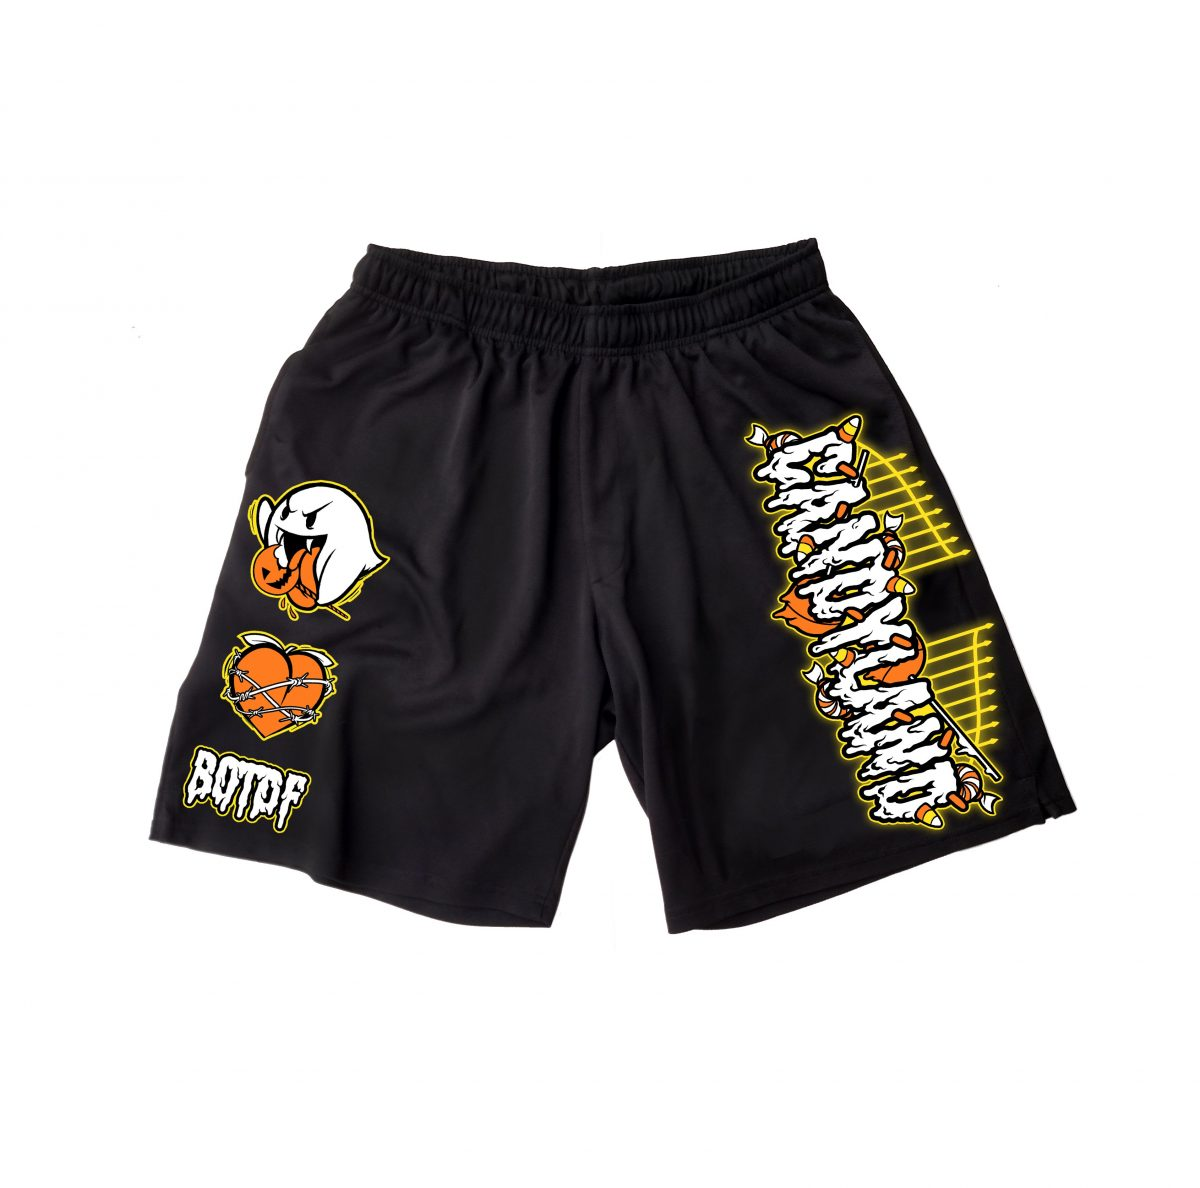 NEW! BOTDF CANDYLAND BASKETBALL SHORTS (Free Epic Usb Deluxe Included) - thedarkarts